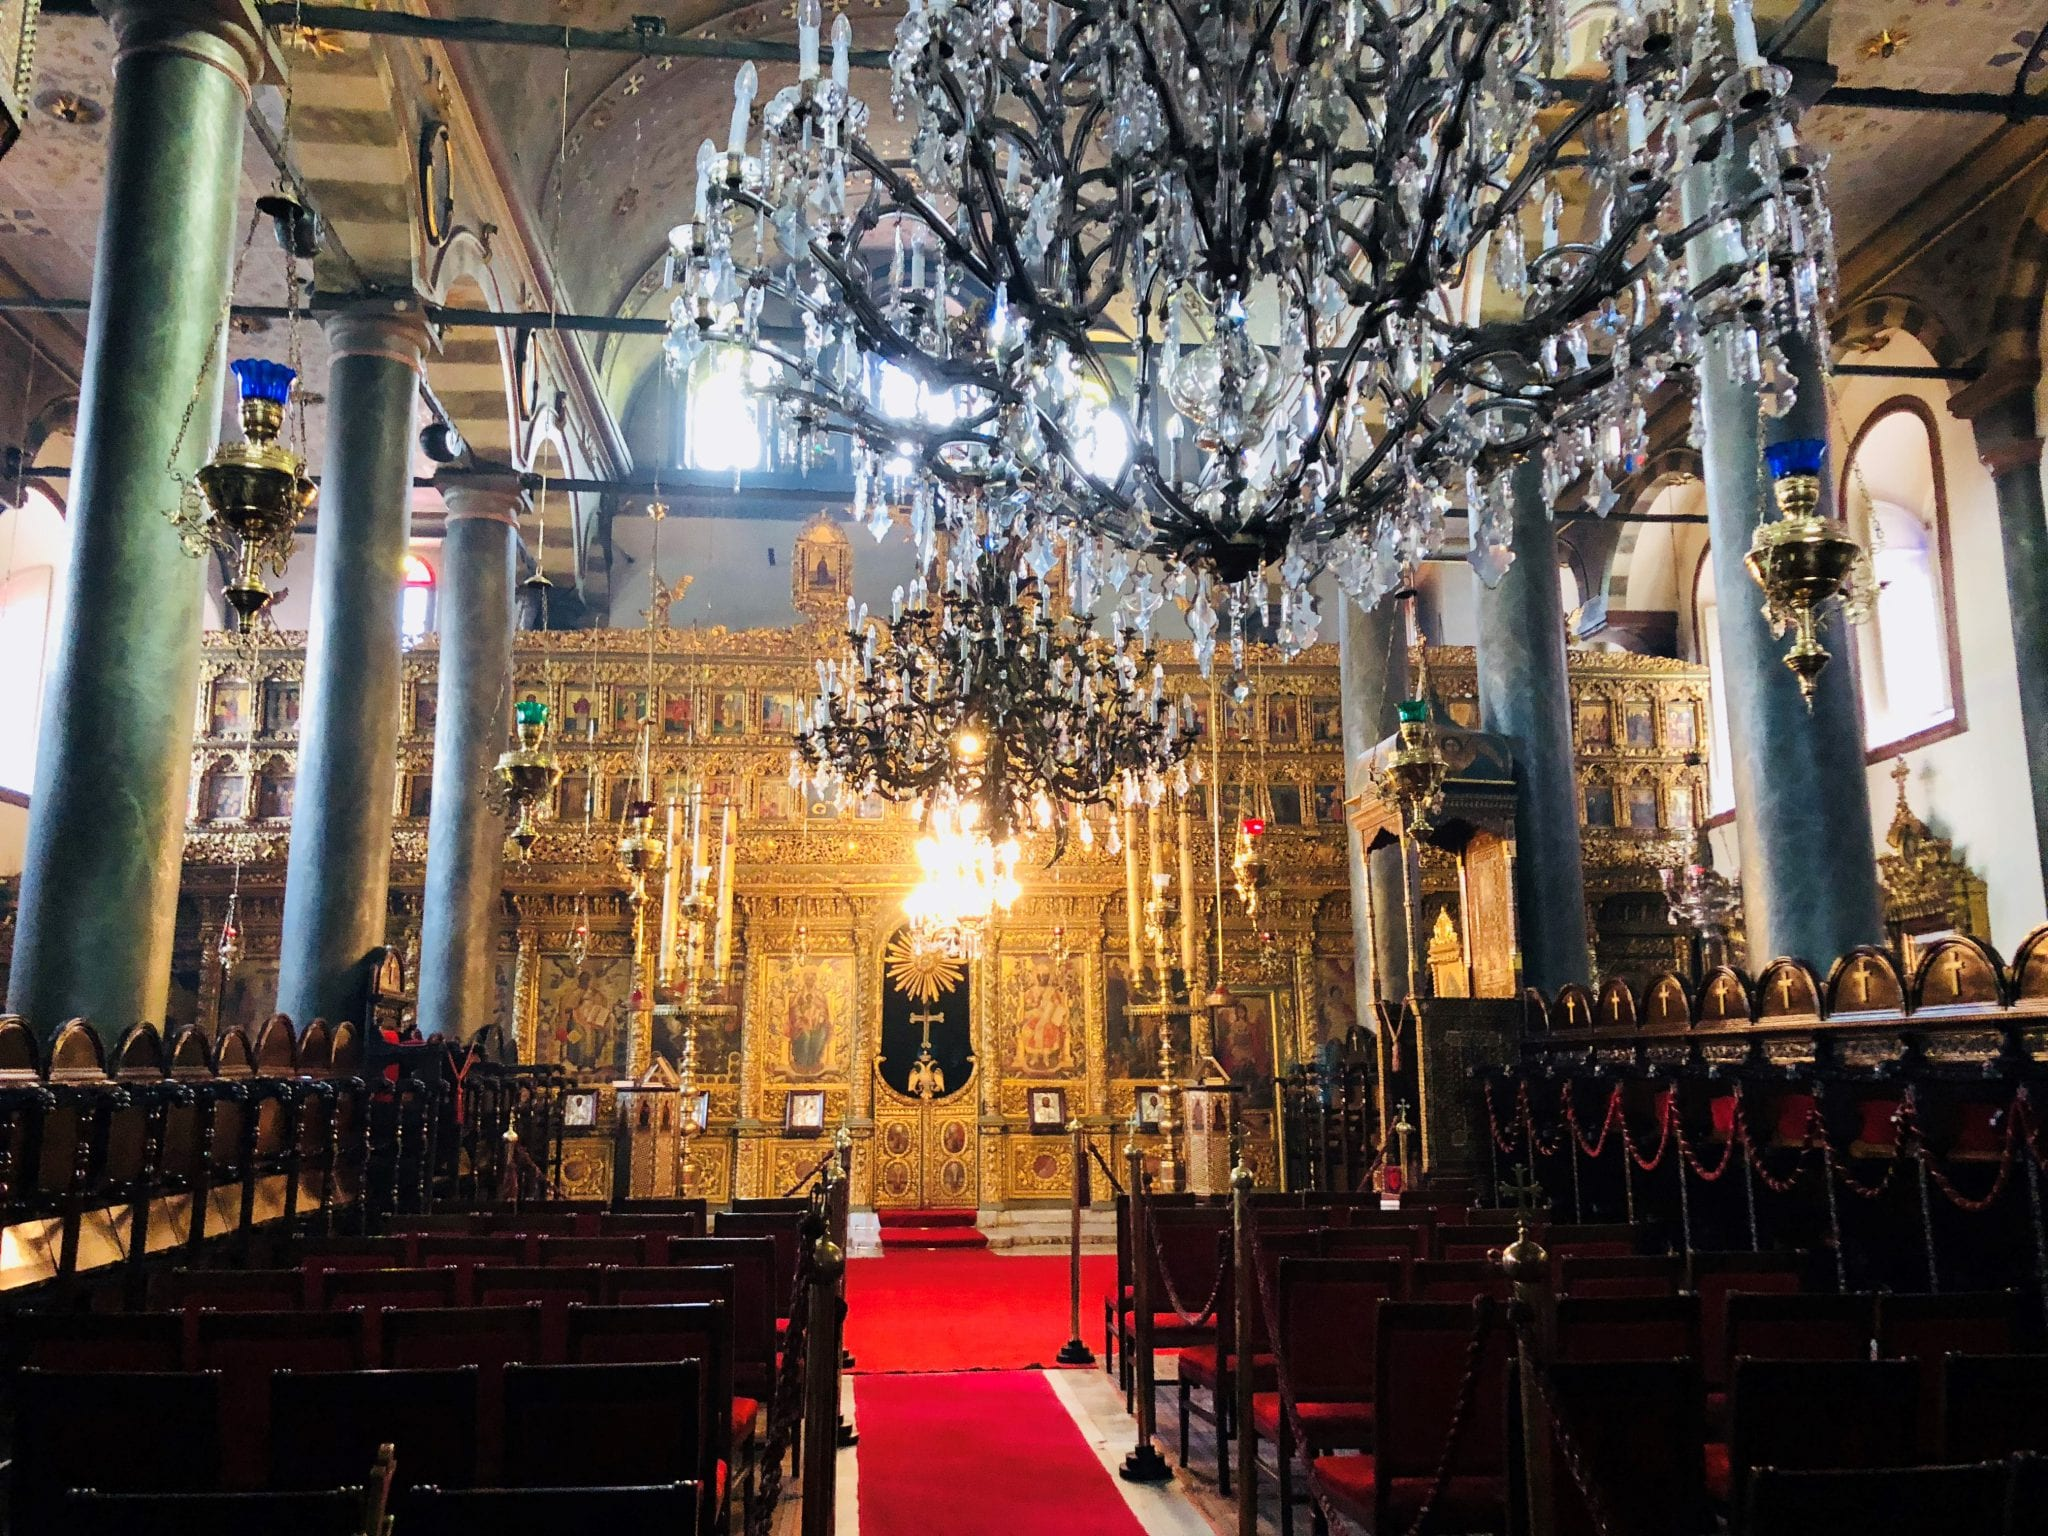 Ecumenical Patriarchy, Eastern Orthodox Church, Istanbul. Celebrating Easter with Eastern Orthodox Christians in the Middle East, Hanne Nabintu Herland Report Istanbul